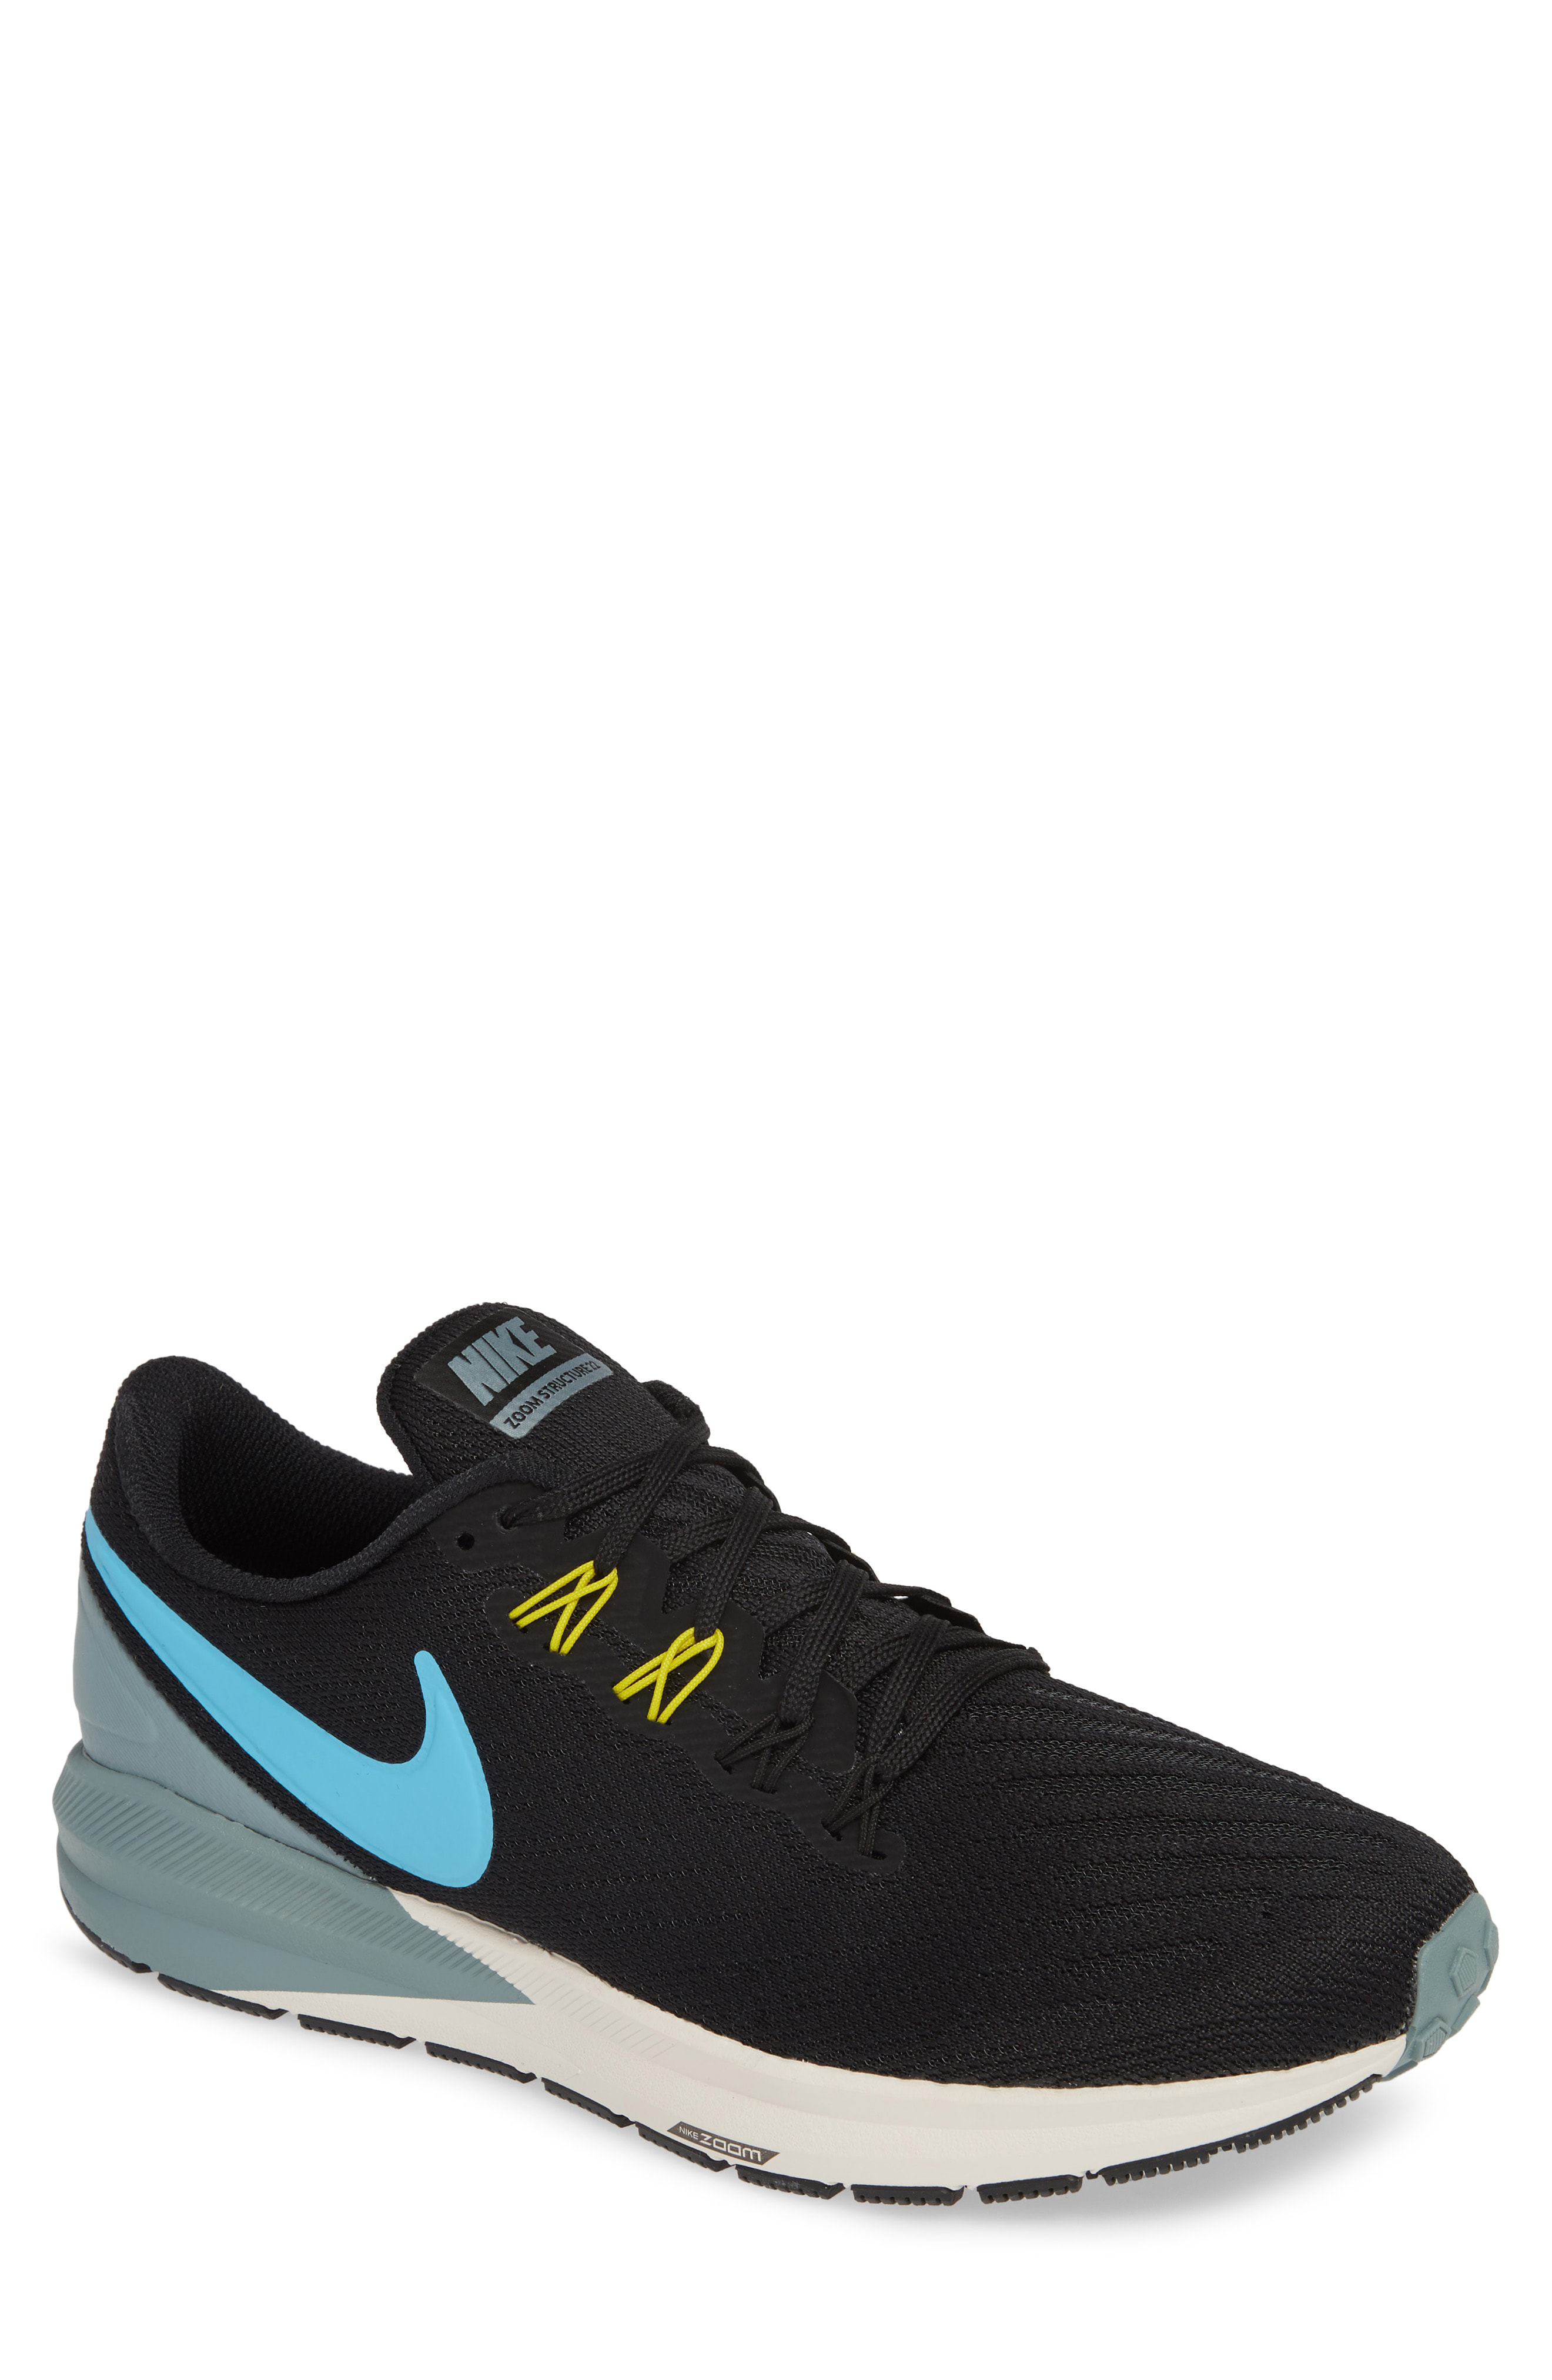 7260639f4c404 Nike Air Zoom Structure 22 Running Shoe In Black